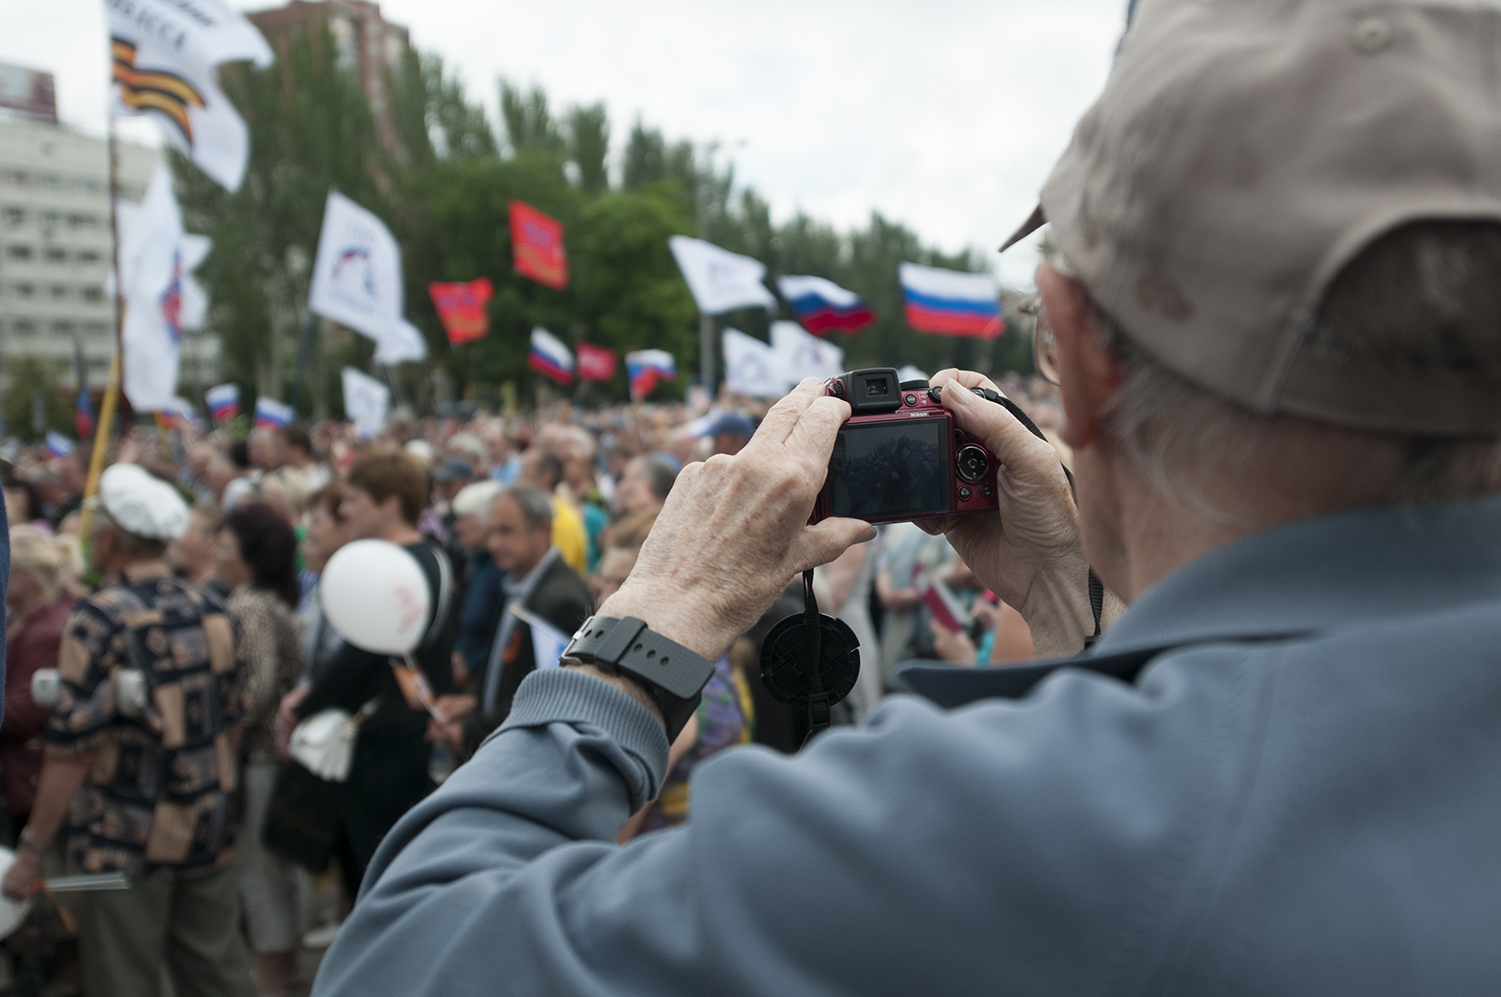 An elderly man taking pictures of the crowd at the Donetsk People's Republic meeting